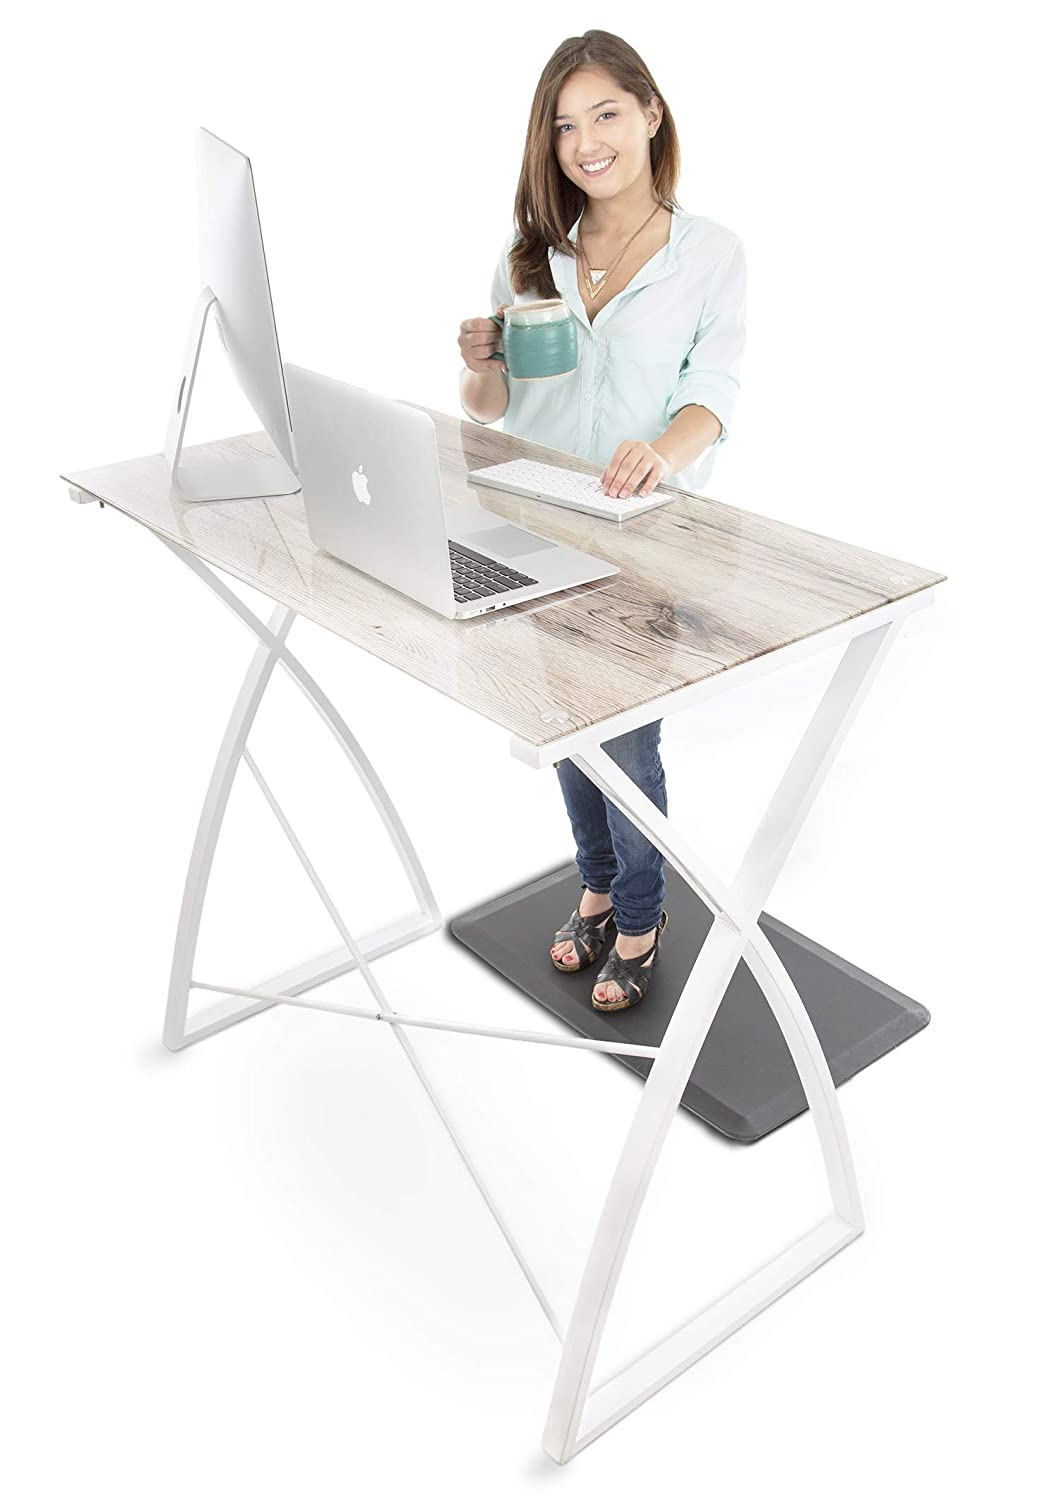 "Stand Steady Joy Desk | Multifunctional Standing Table, Modern Glass Top with White Wood Look | Pretty Standing Desk w/Spacious Desktop Perfect for Home, Office & More! (White Wood / 43.25"" x 23.5"")"